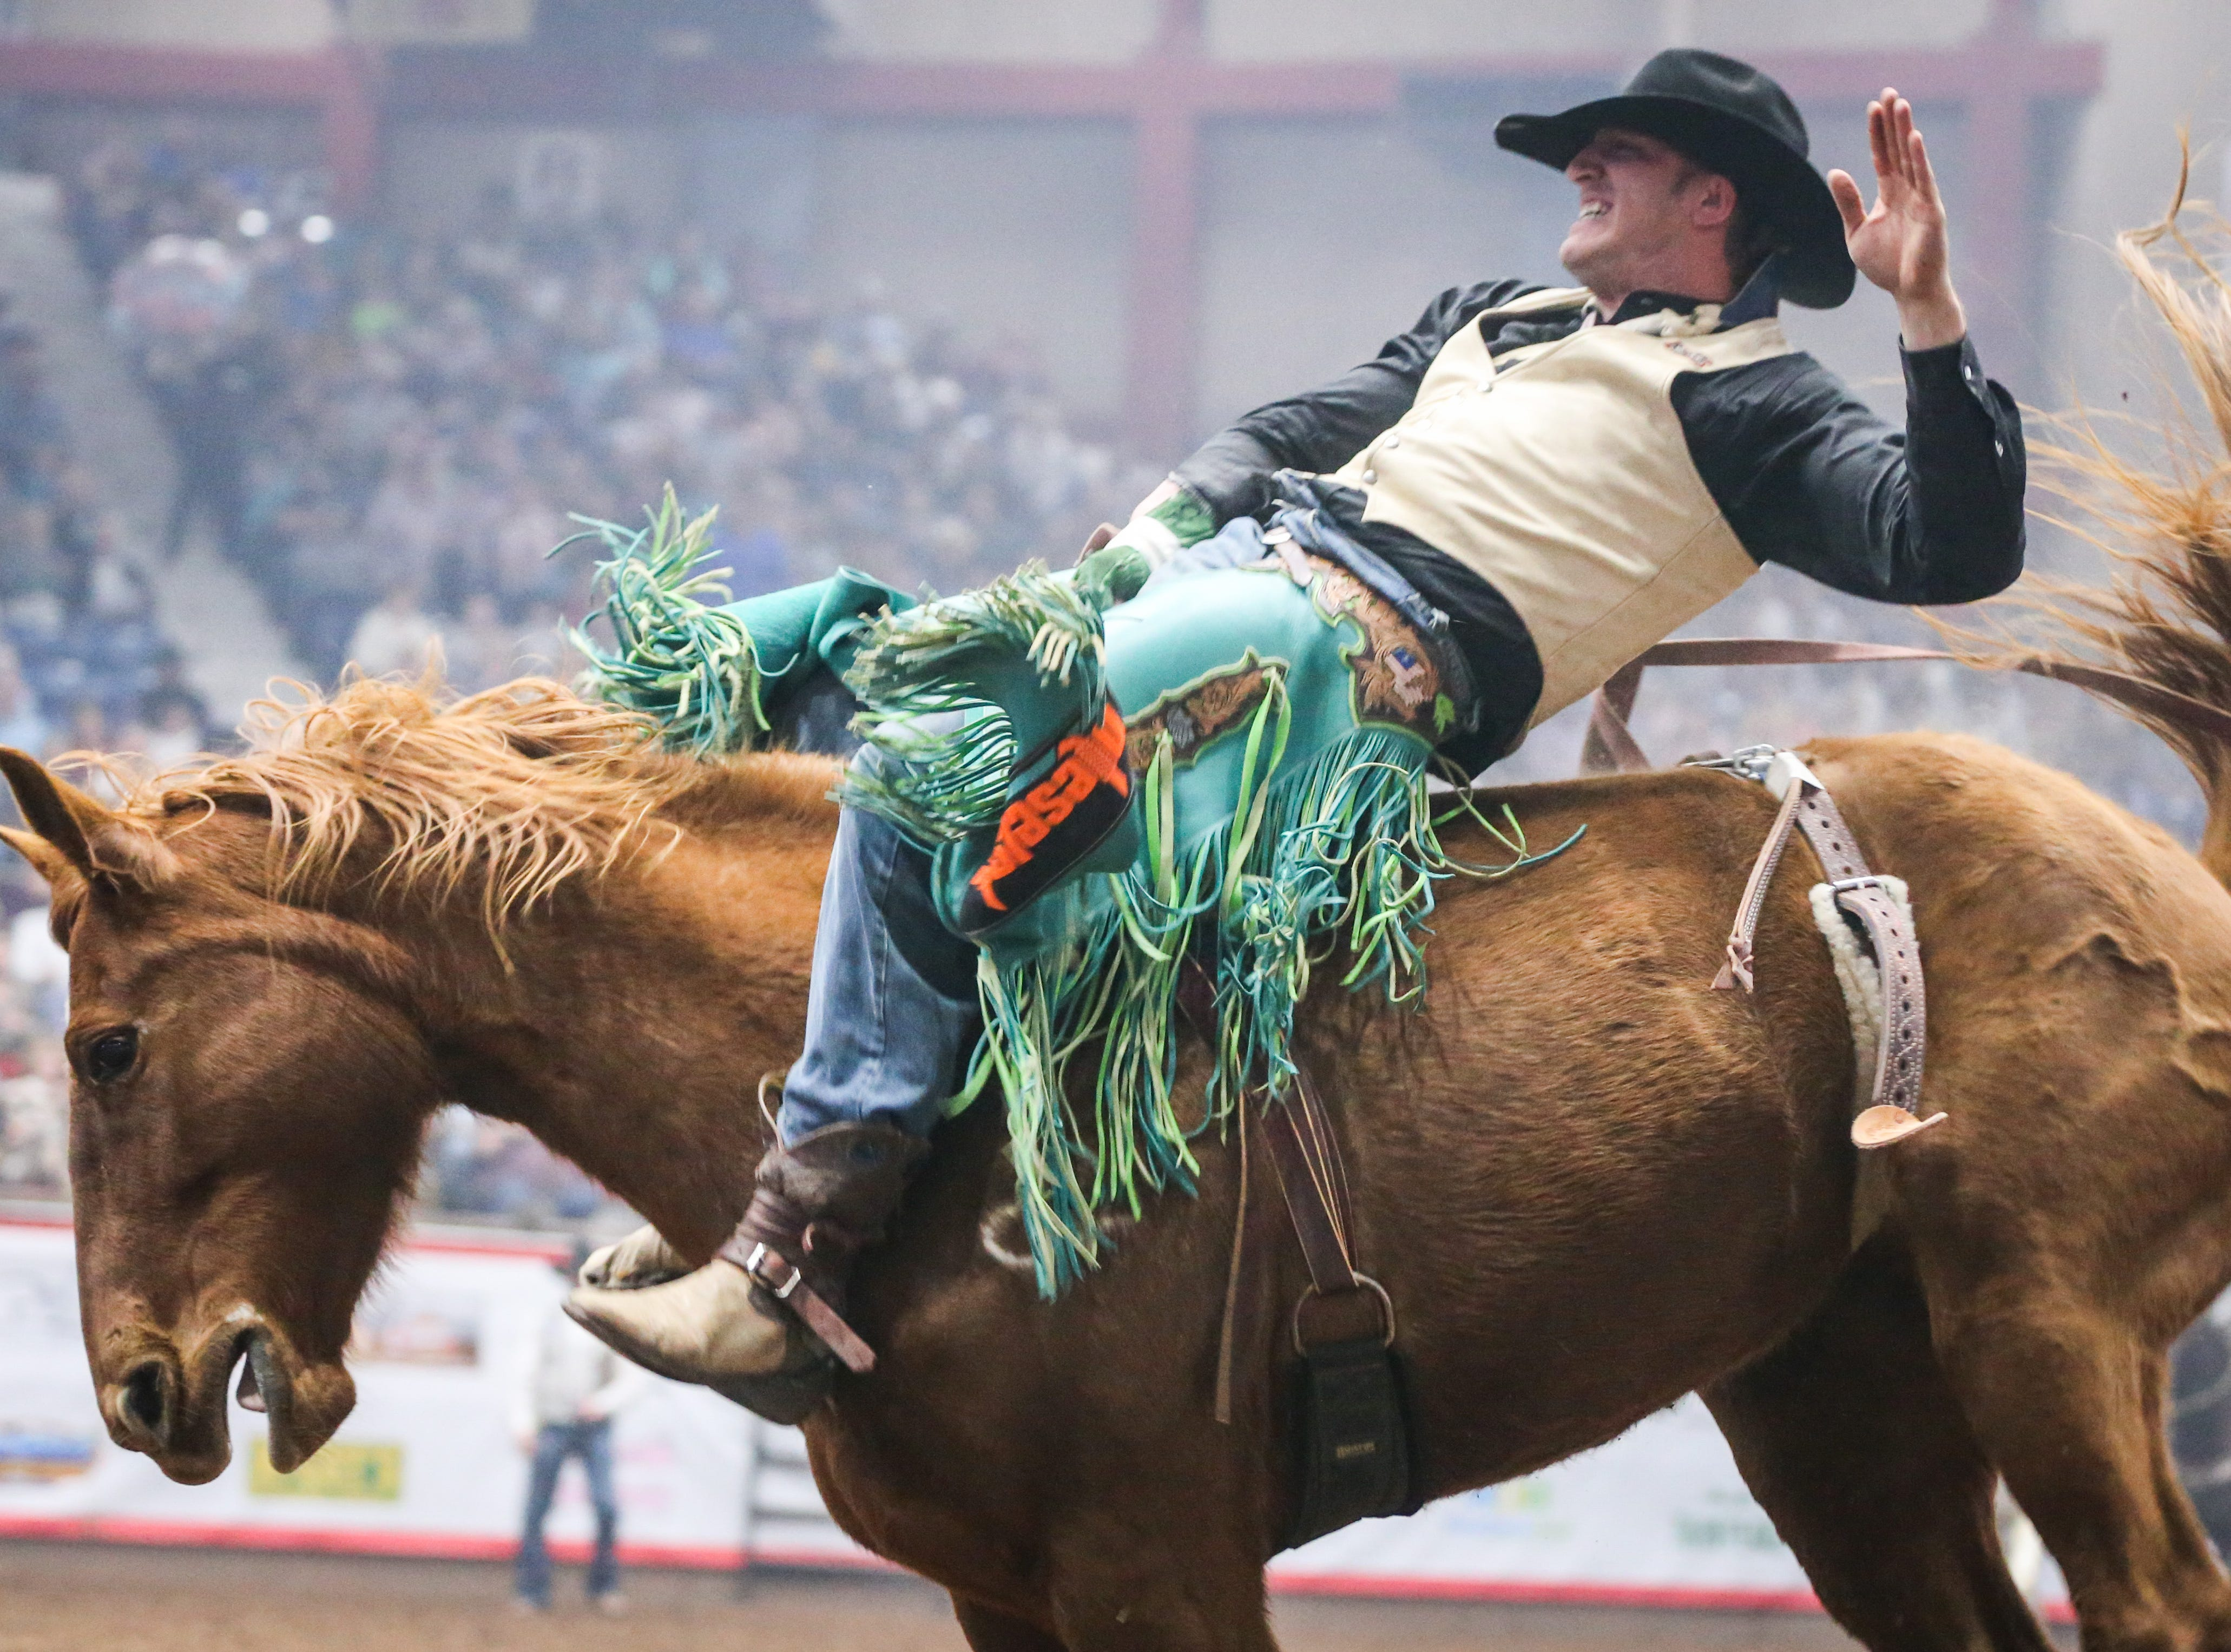 Wyatt Ortega rides bareback on Betty Boop during finals of the San Angelo Stock Show & Rodeo Friday, Feb. 15, 2019, at Foster Communications Coliseum.